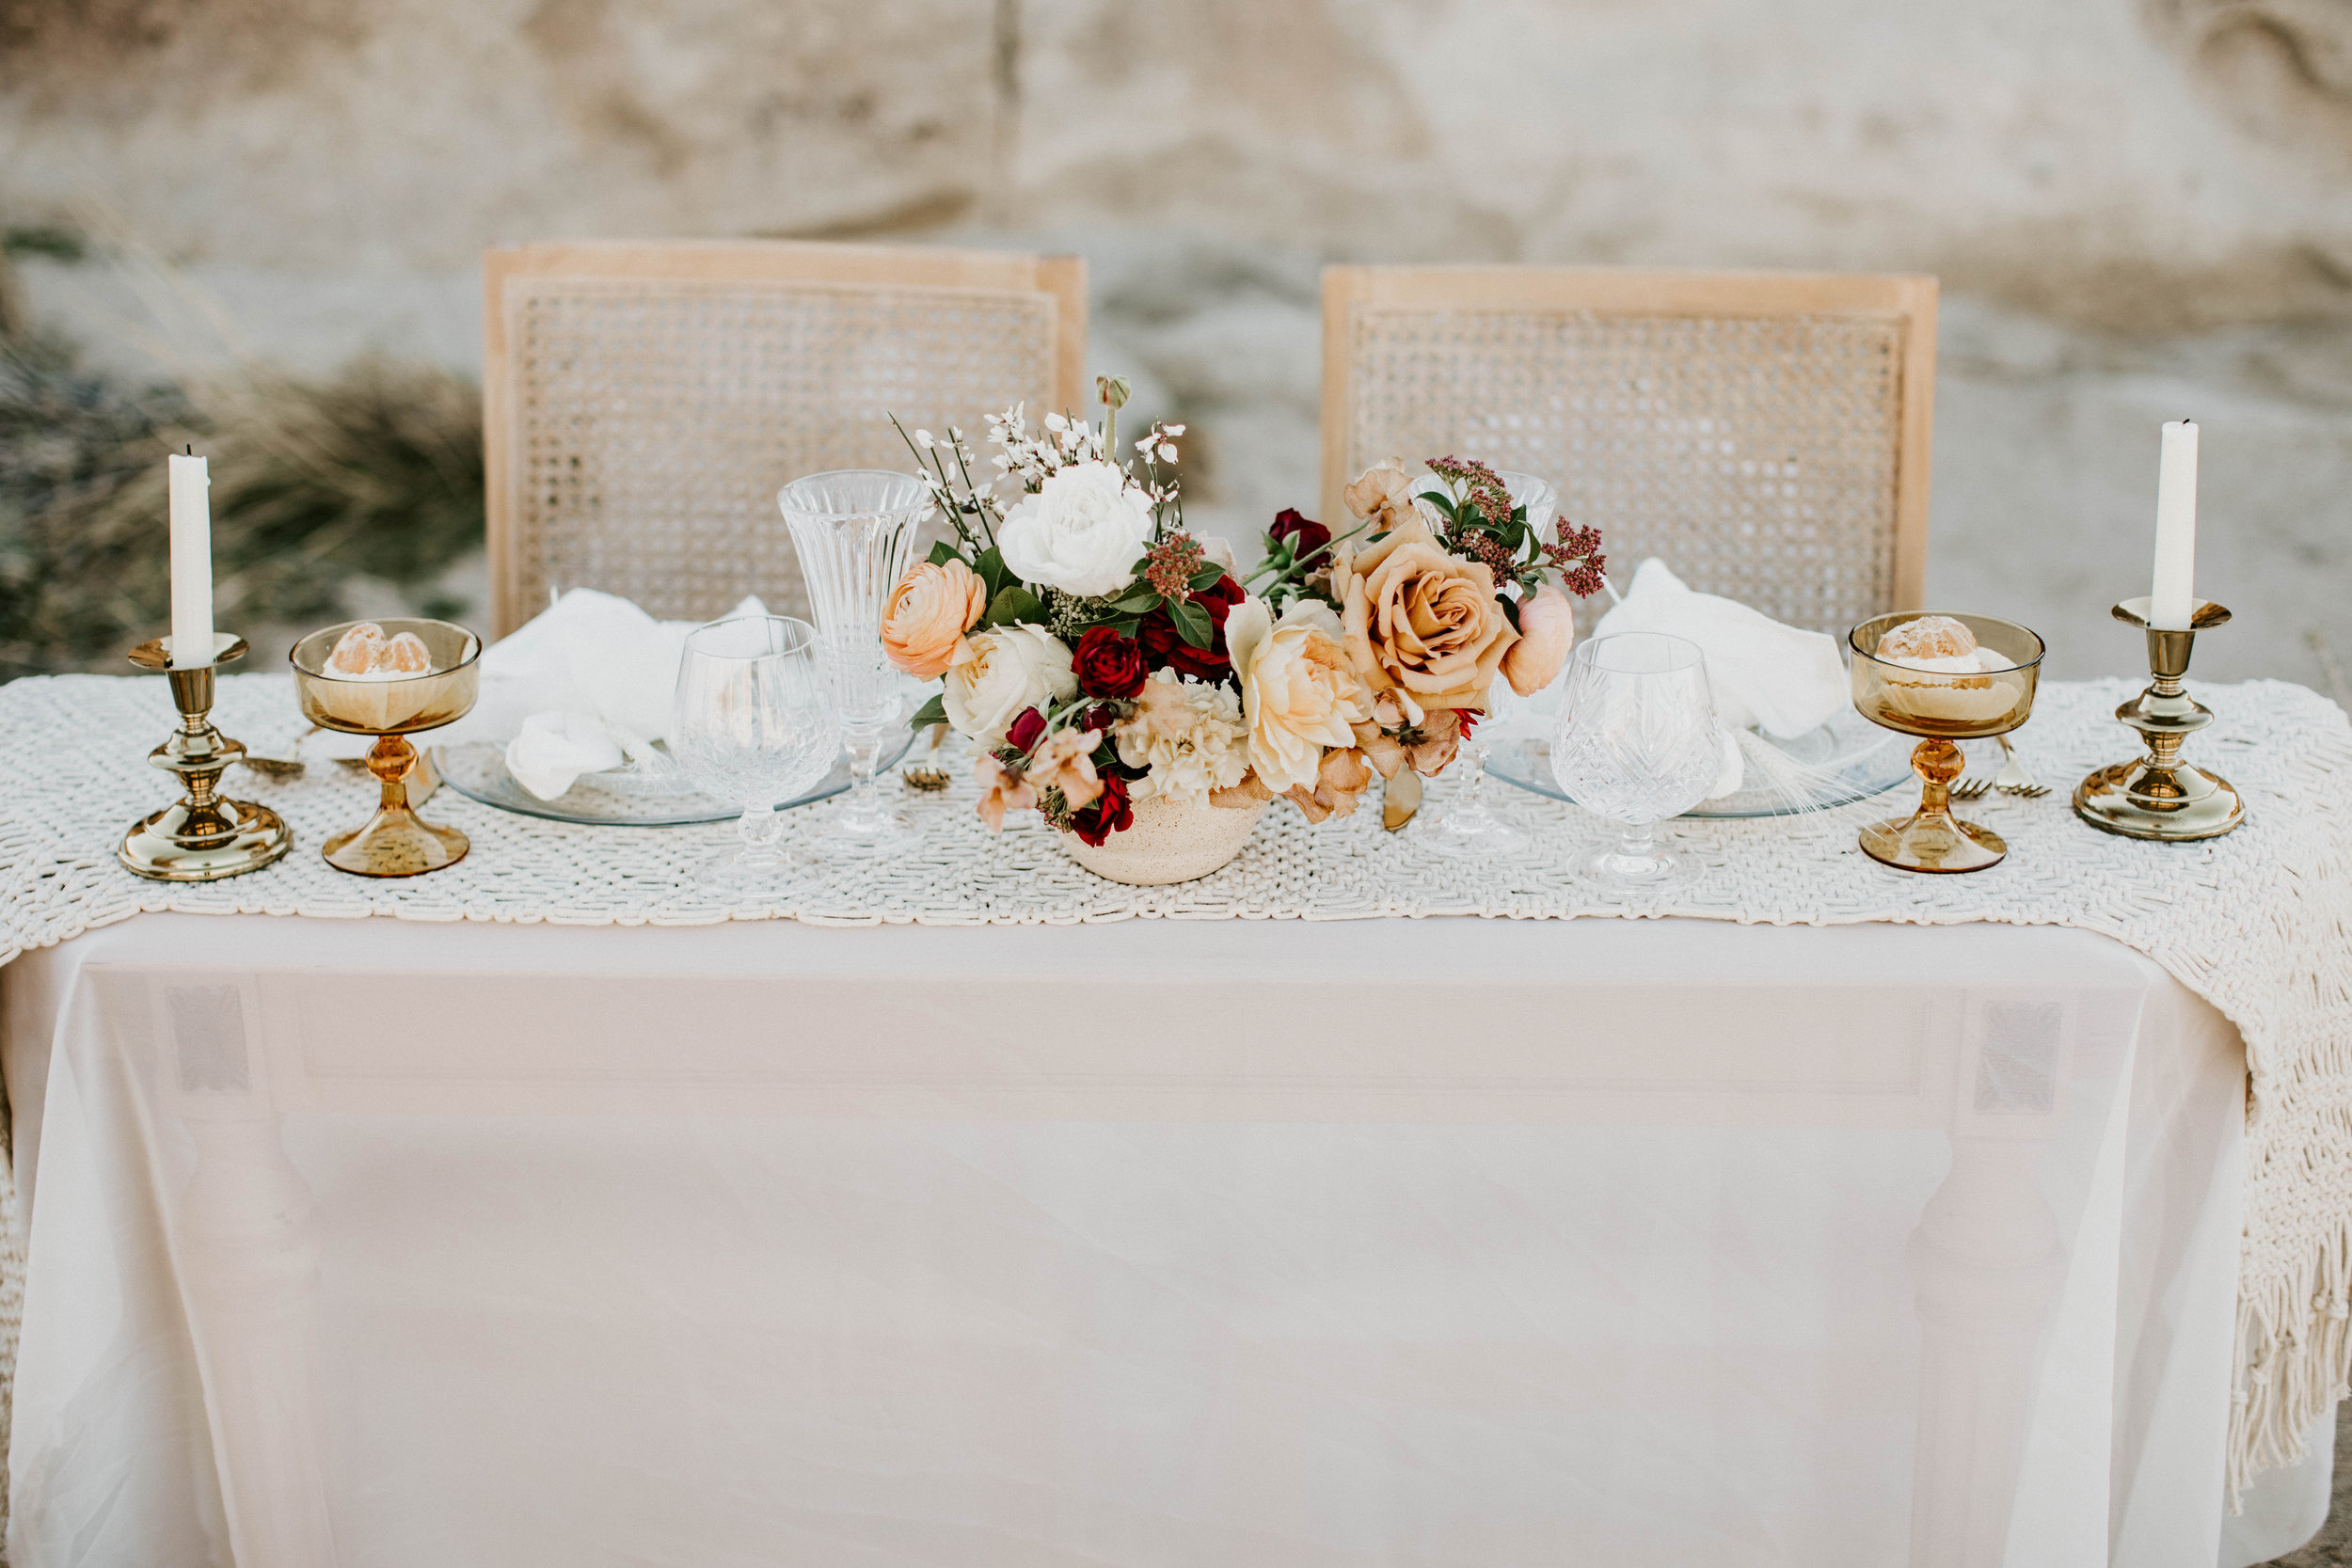 Sweetheart Table Package - This includes table settings for two: plates (2-3) glassware (2-3), utensils, napkins and 1-2 pieces of decor.Just tabletop: $75Tabletop and furniture (table and two chairs): $175